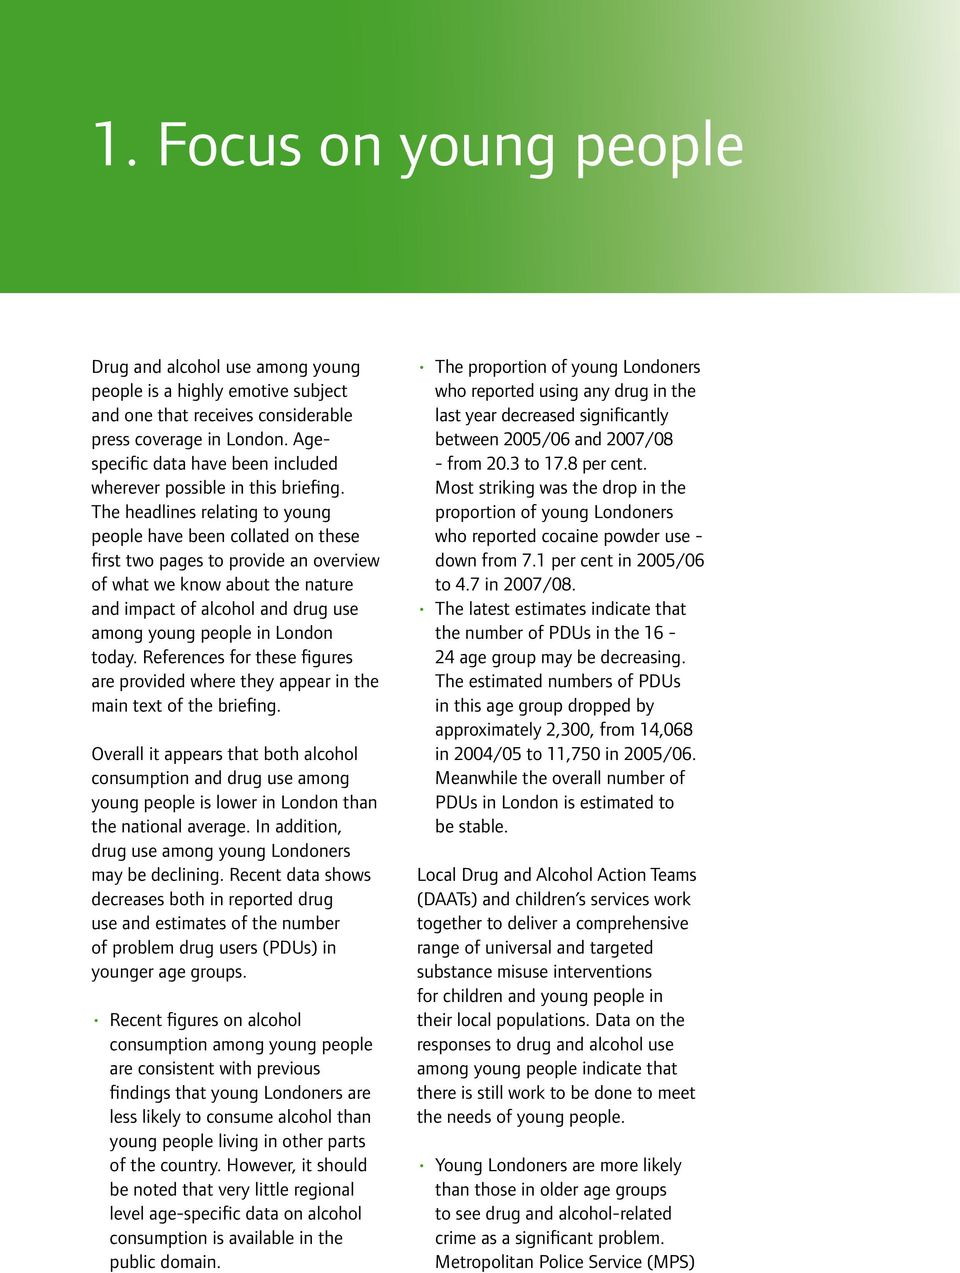 The headlines relating to young people have been collated on these first two pages to provide an overview of what we know about the nature and impact of alcohol and drug use among young people in